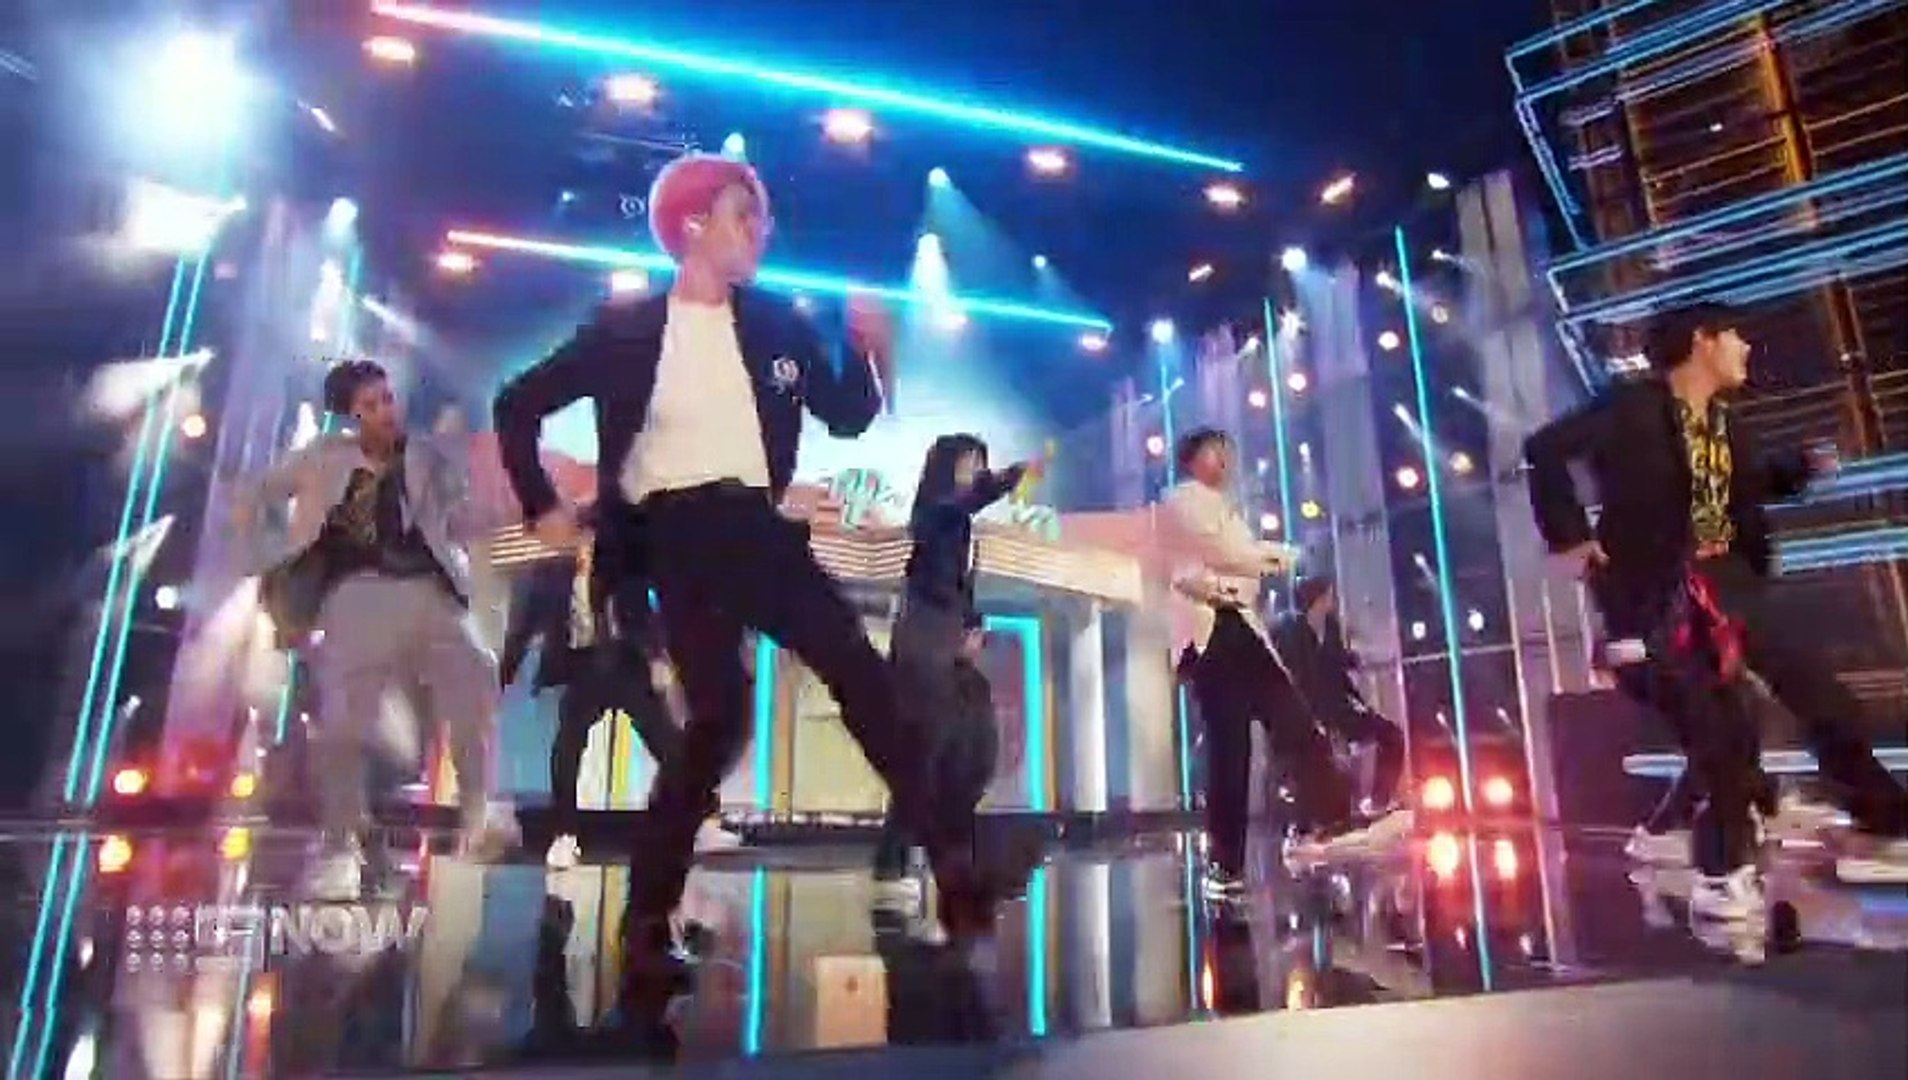 BTS perform Boy With Luv featuring Halsey at the 2019 Billboard Music Awards